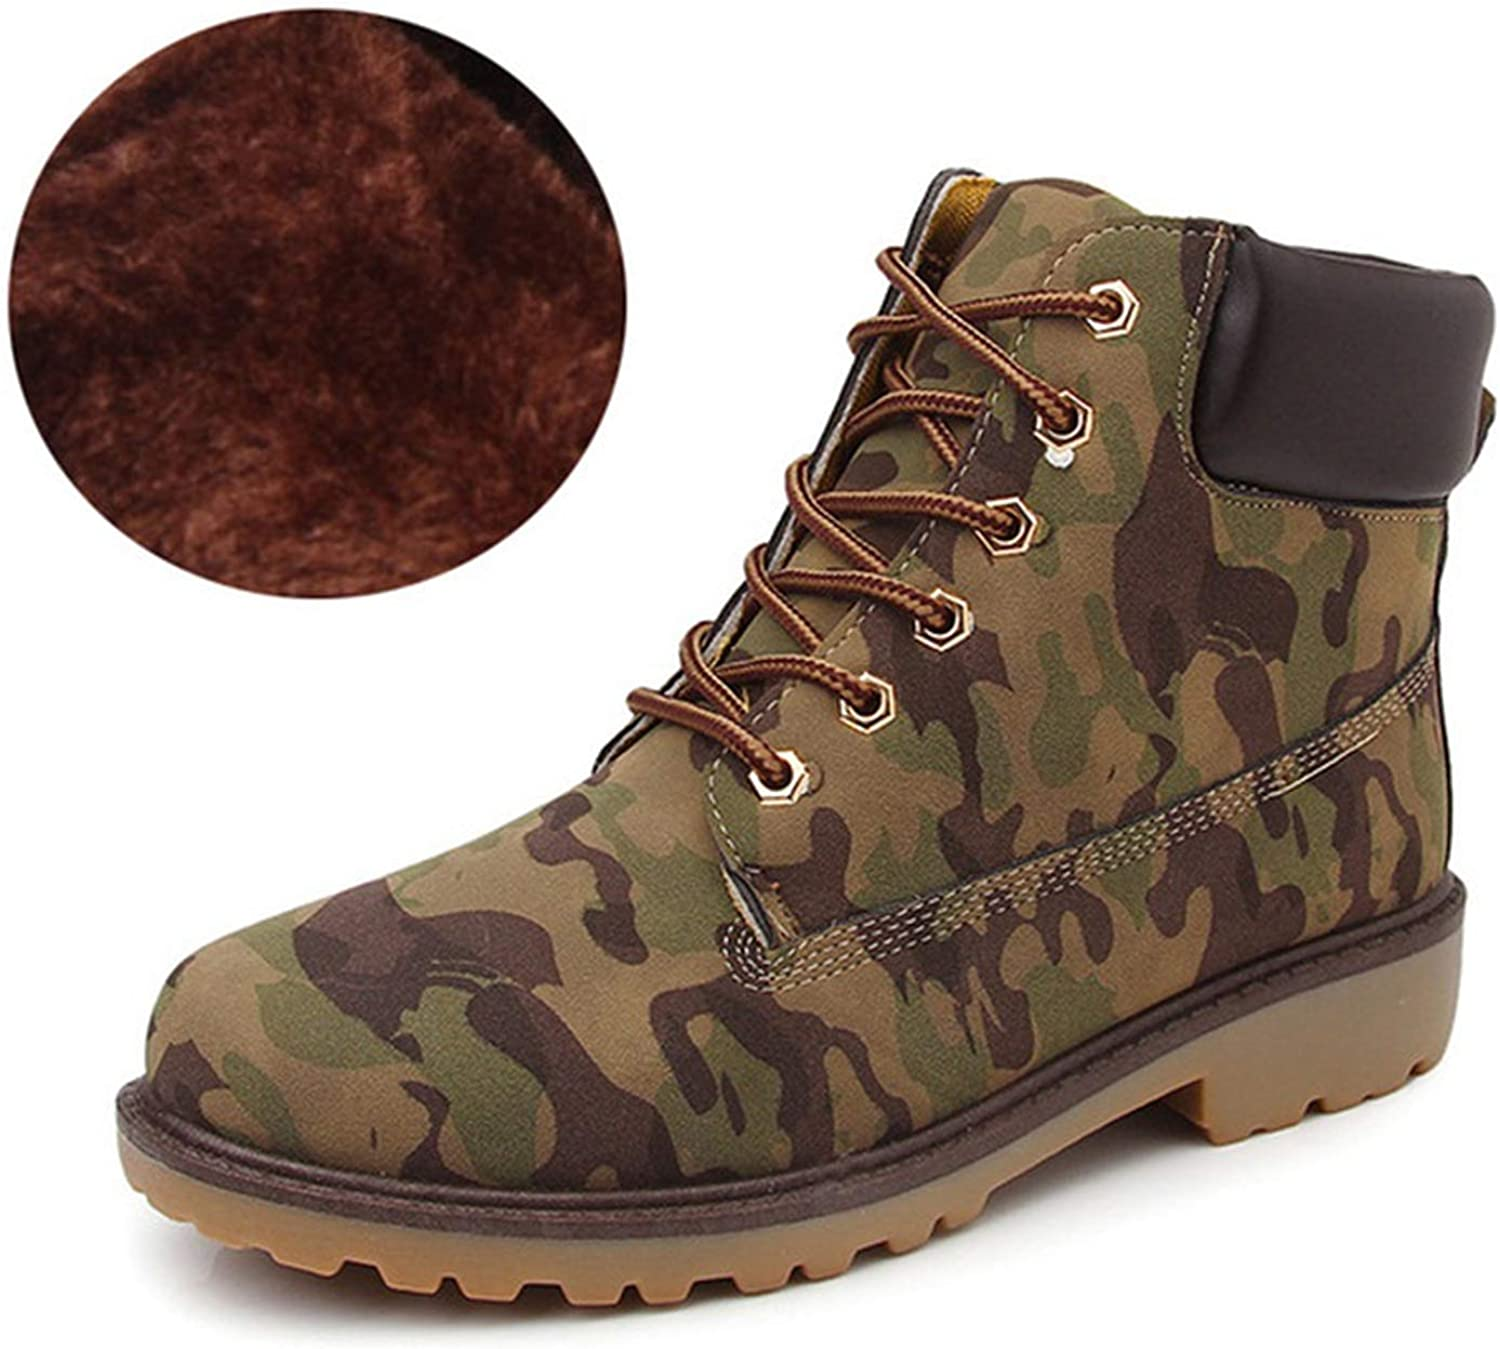 Welcometoo Unisex Martin Boots Women Lace-Up Mens shoes Plush Warm Fashion Casual Couple Rubber Ankle Boots